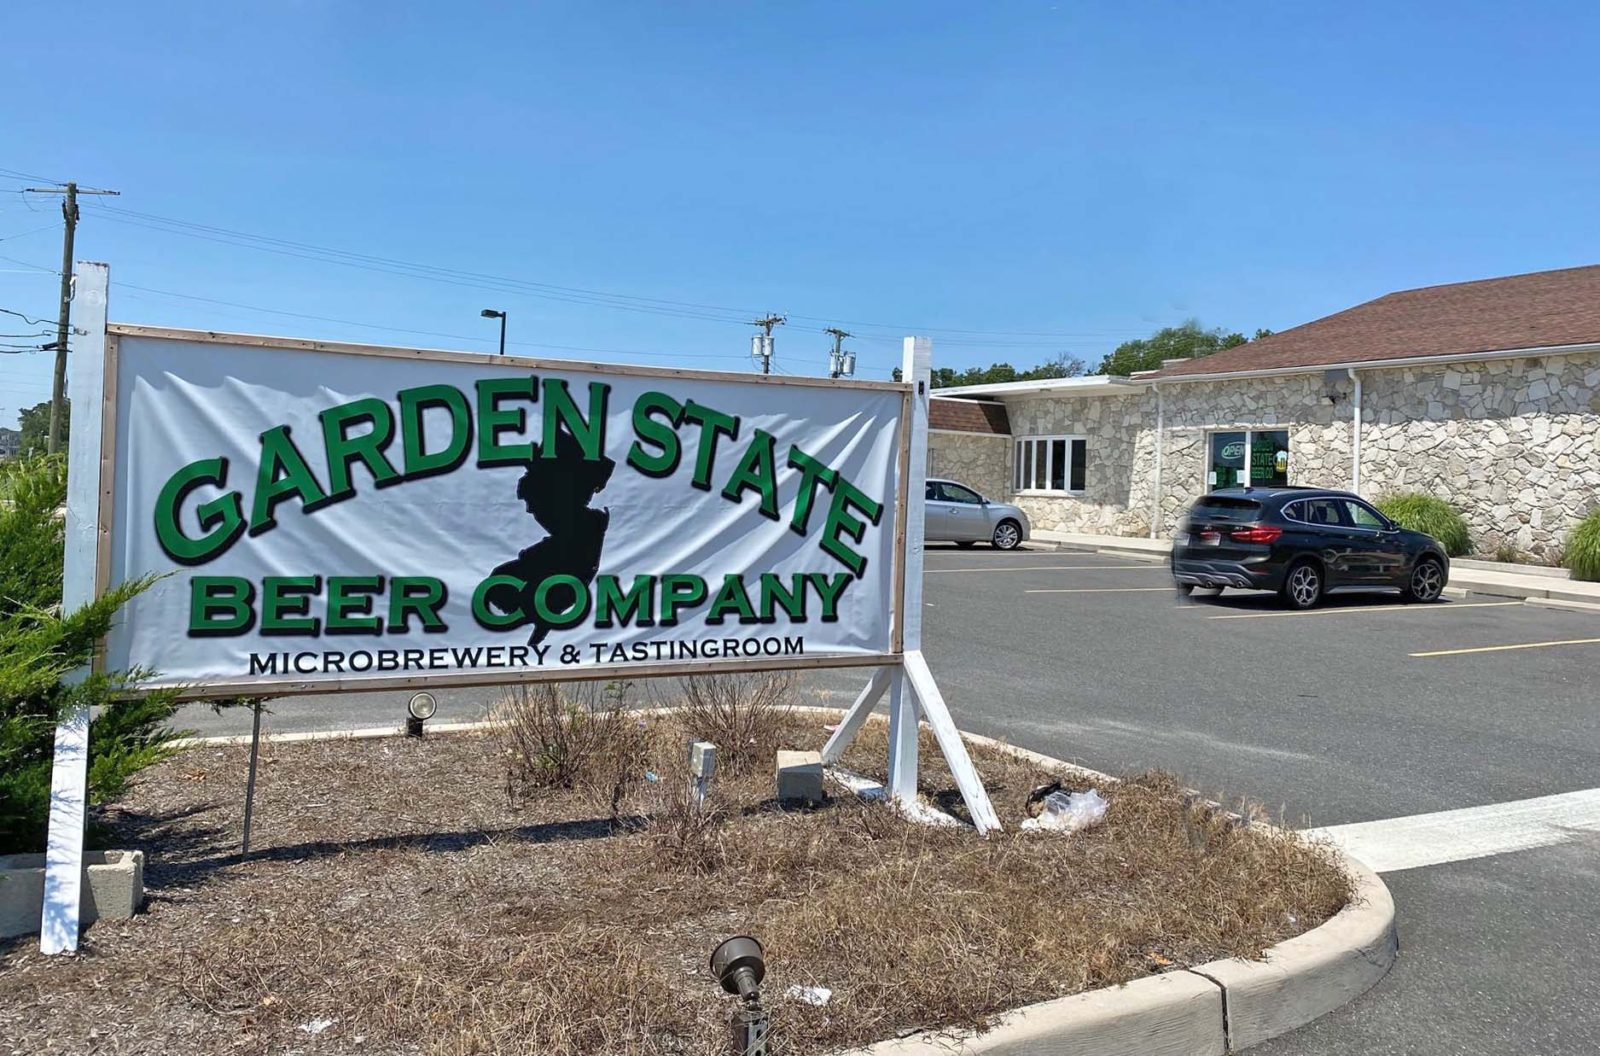 472. Garden State Beer Co, Galloway NJ, 2020 – Beer Appreciation